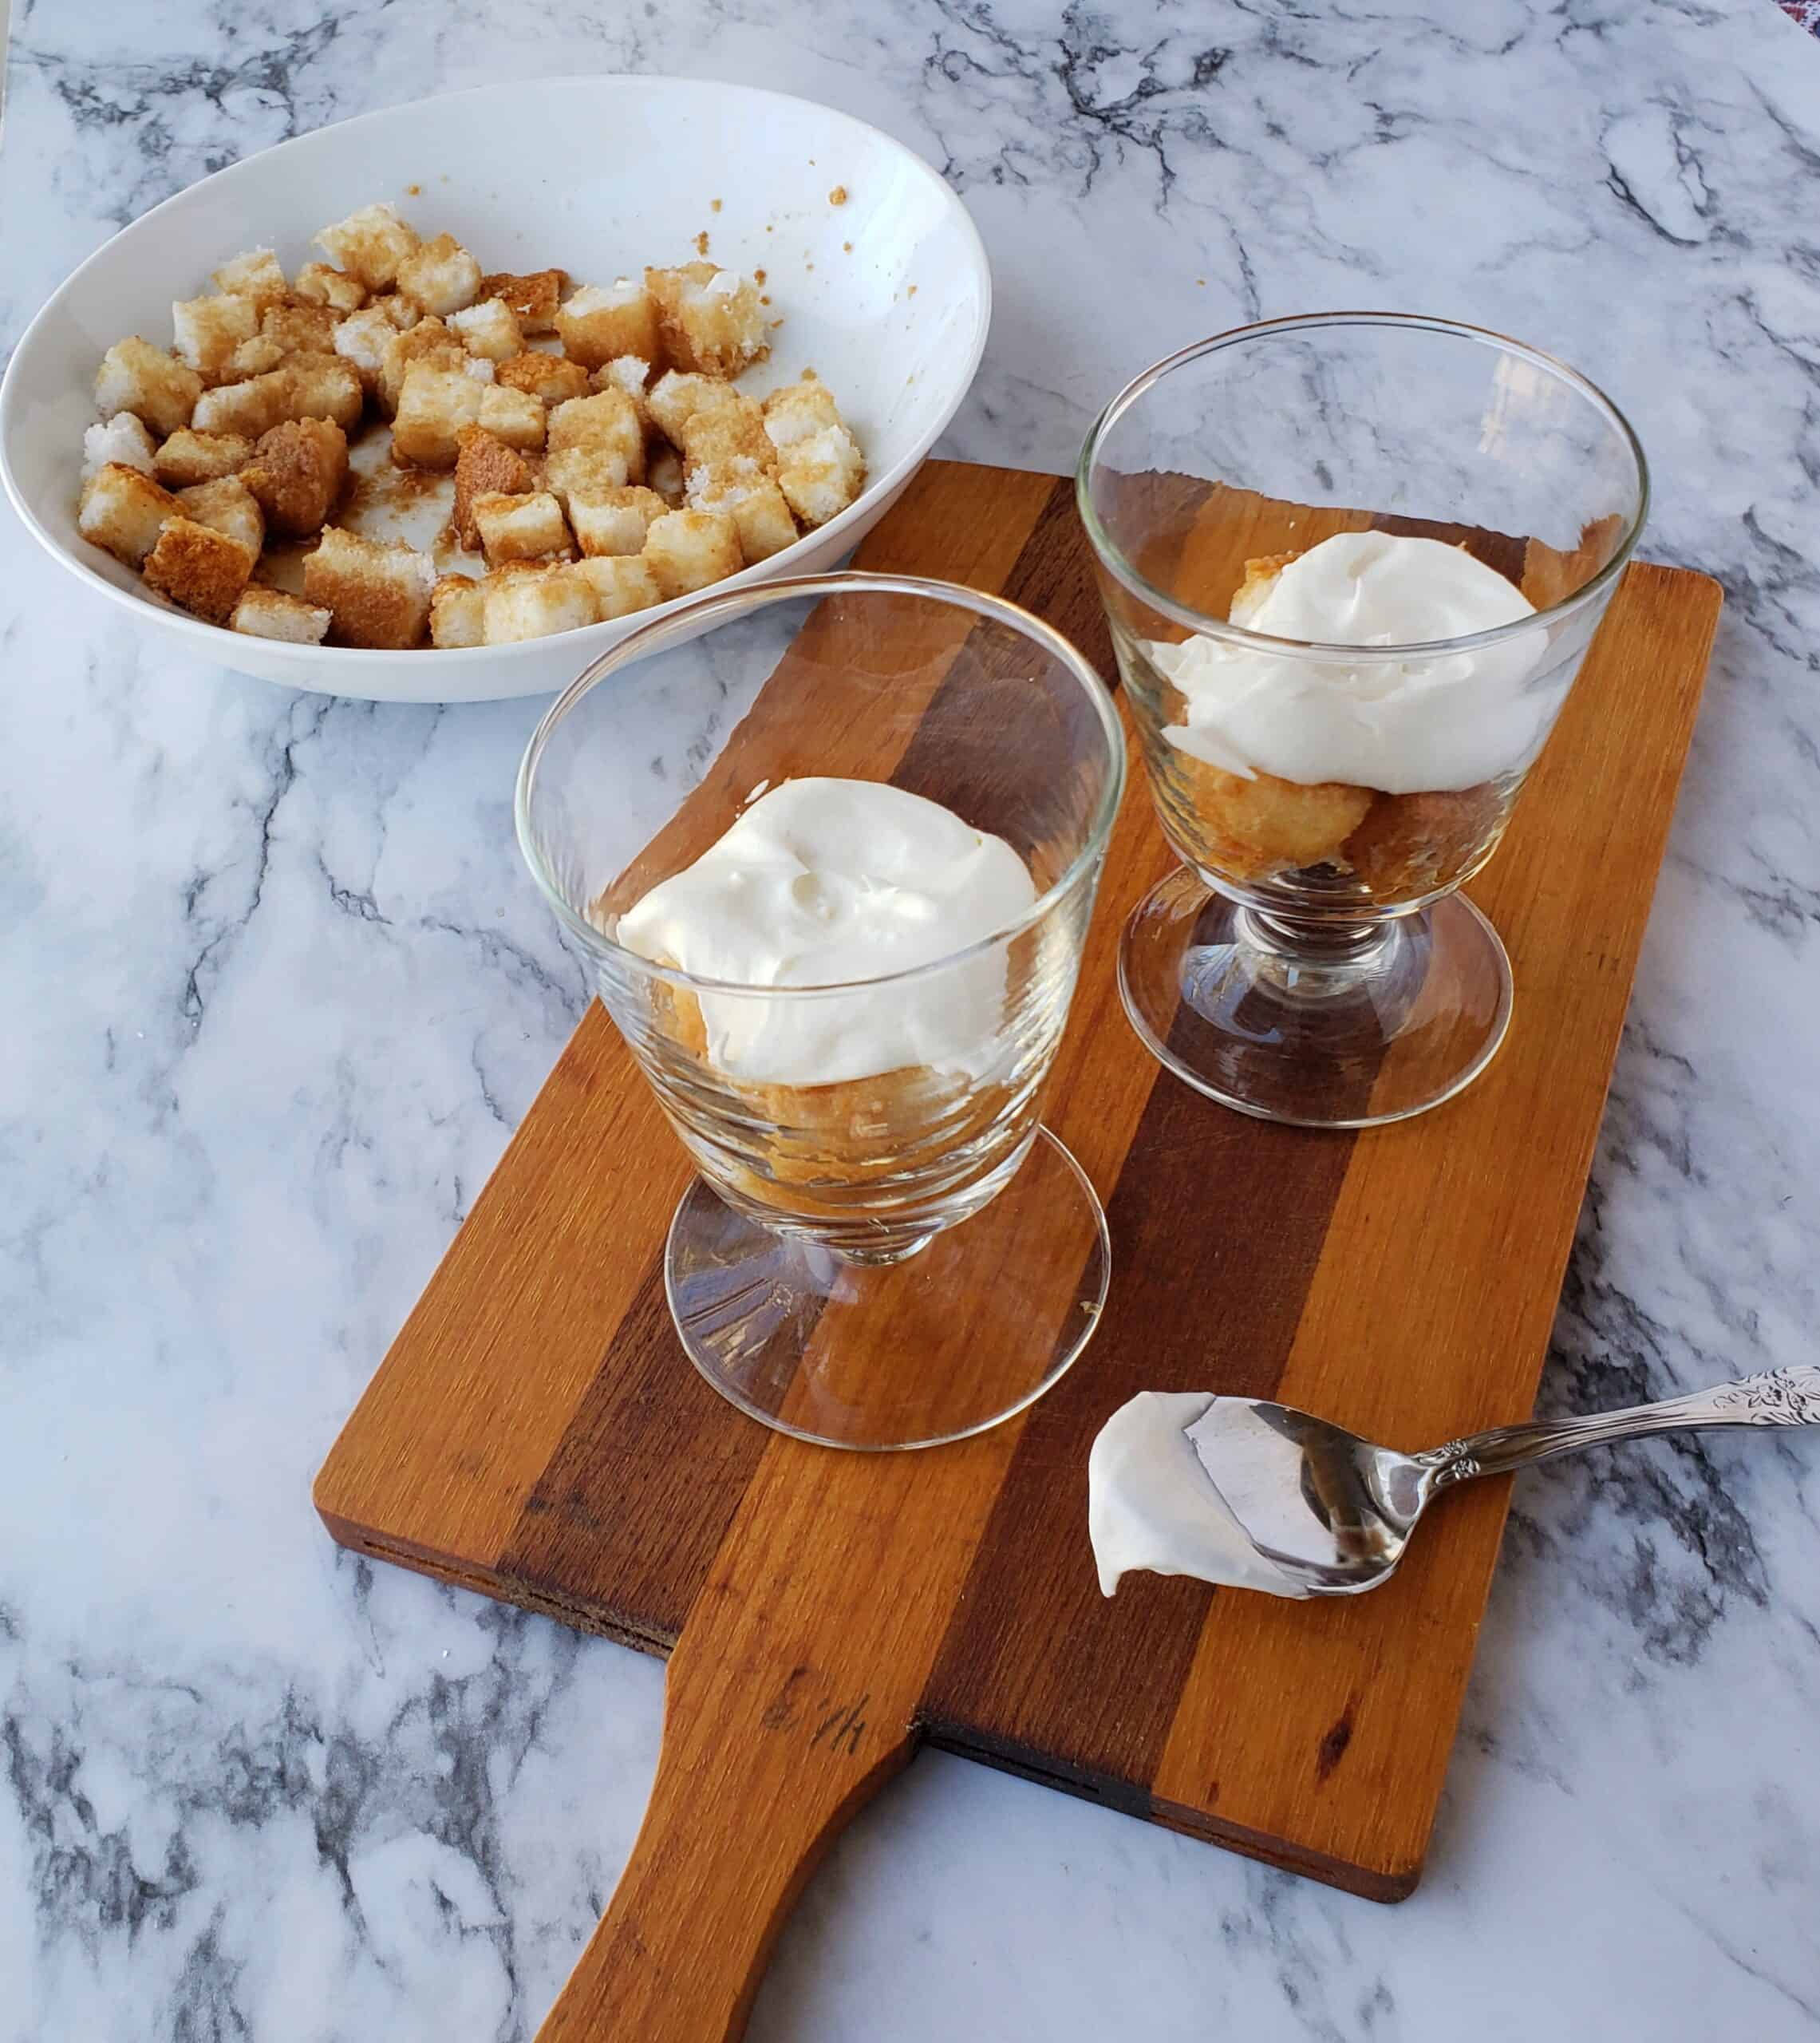 Layer sweet tea soaked cake cubes in small dessert dishescreamy Neufchatel mixture on wooden cutting board